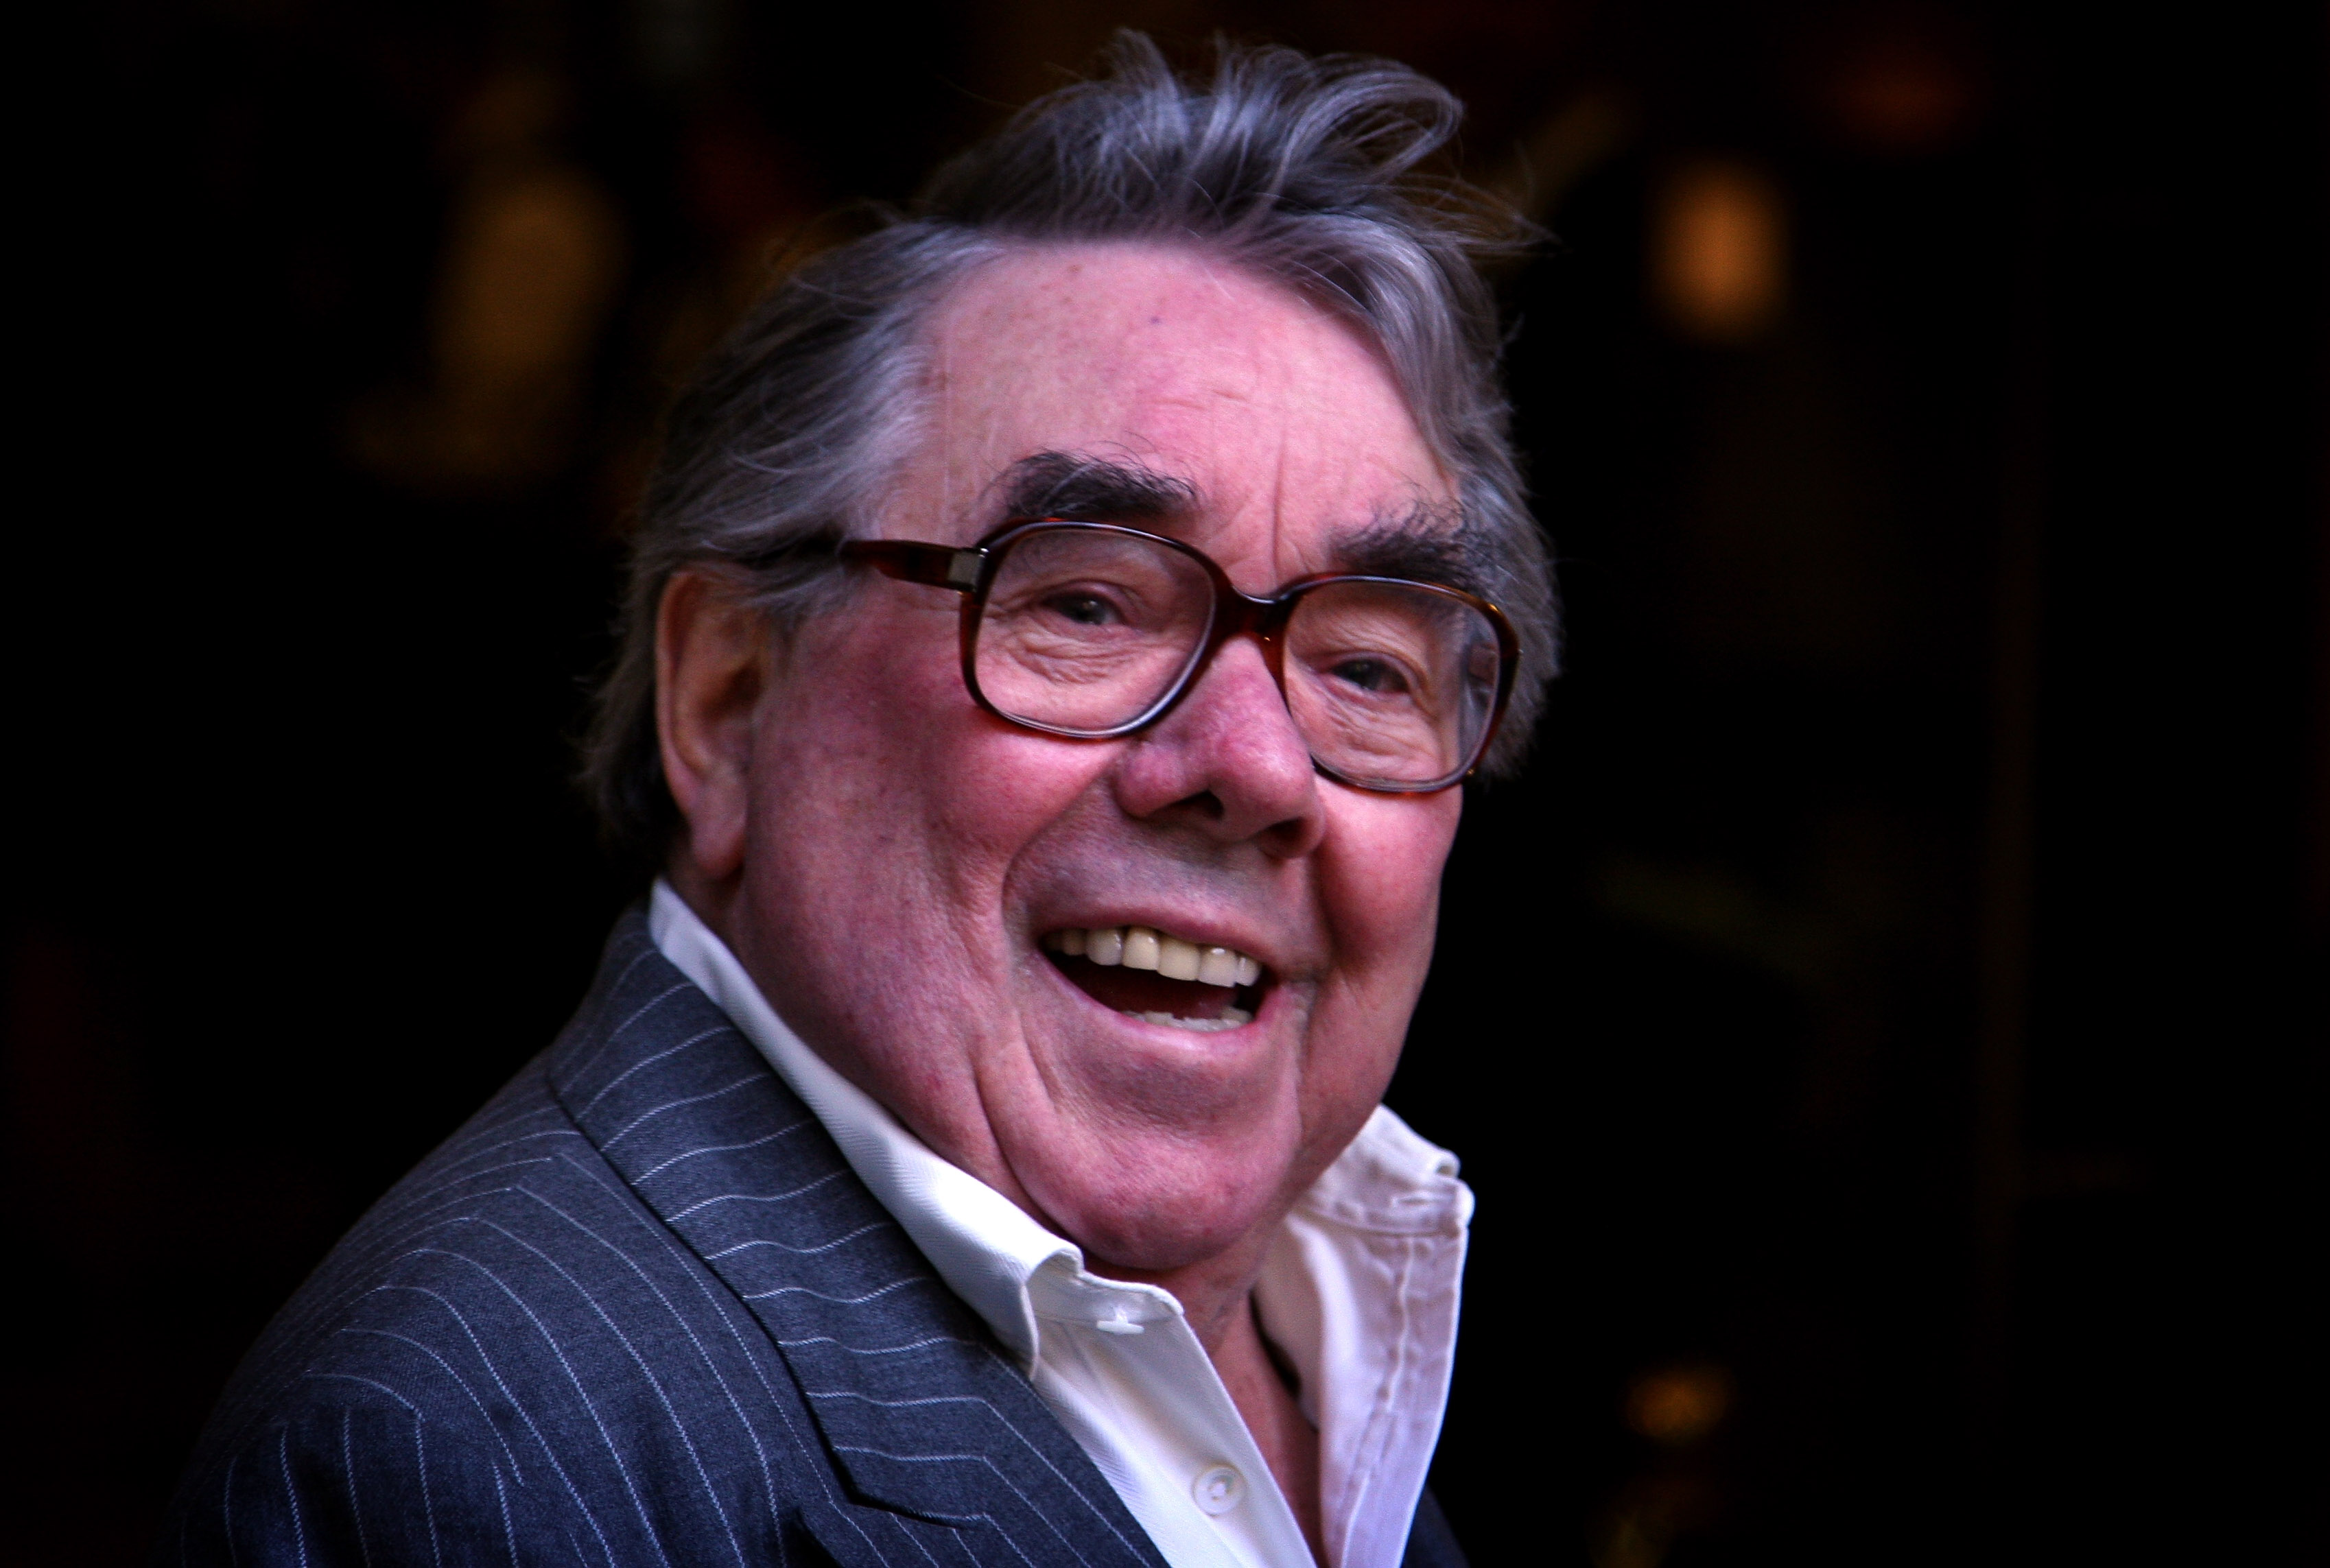 LONDON, ENGLAND - SEPTEMBER 01: Actor Ronnie Corbett arrives at the opening of the new Greens restaurant and Oyster Bar on September 1, 2009 in London, England. (Photo by Chris Jackson/Getty Images)